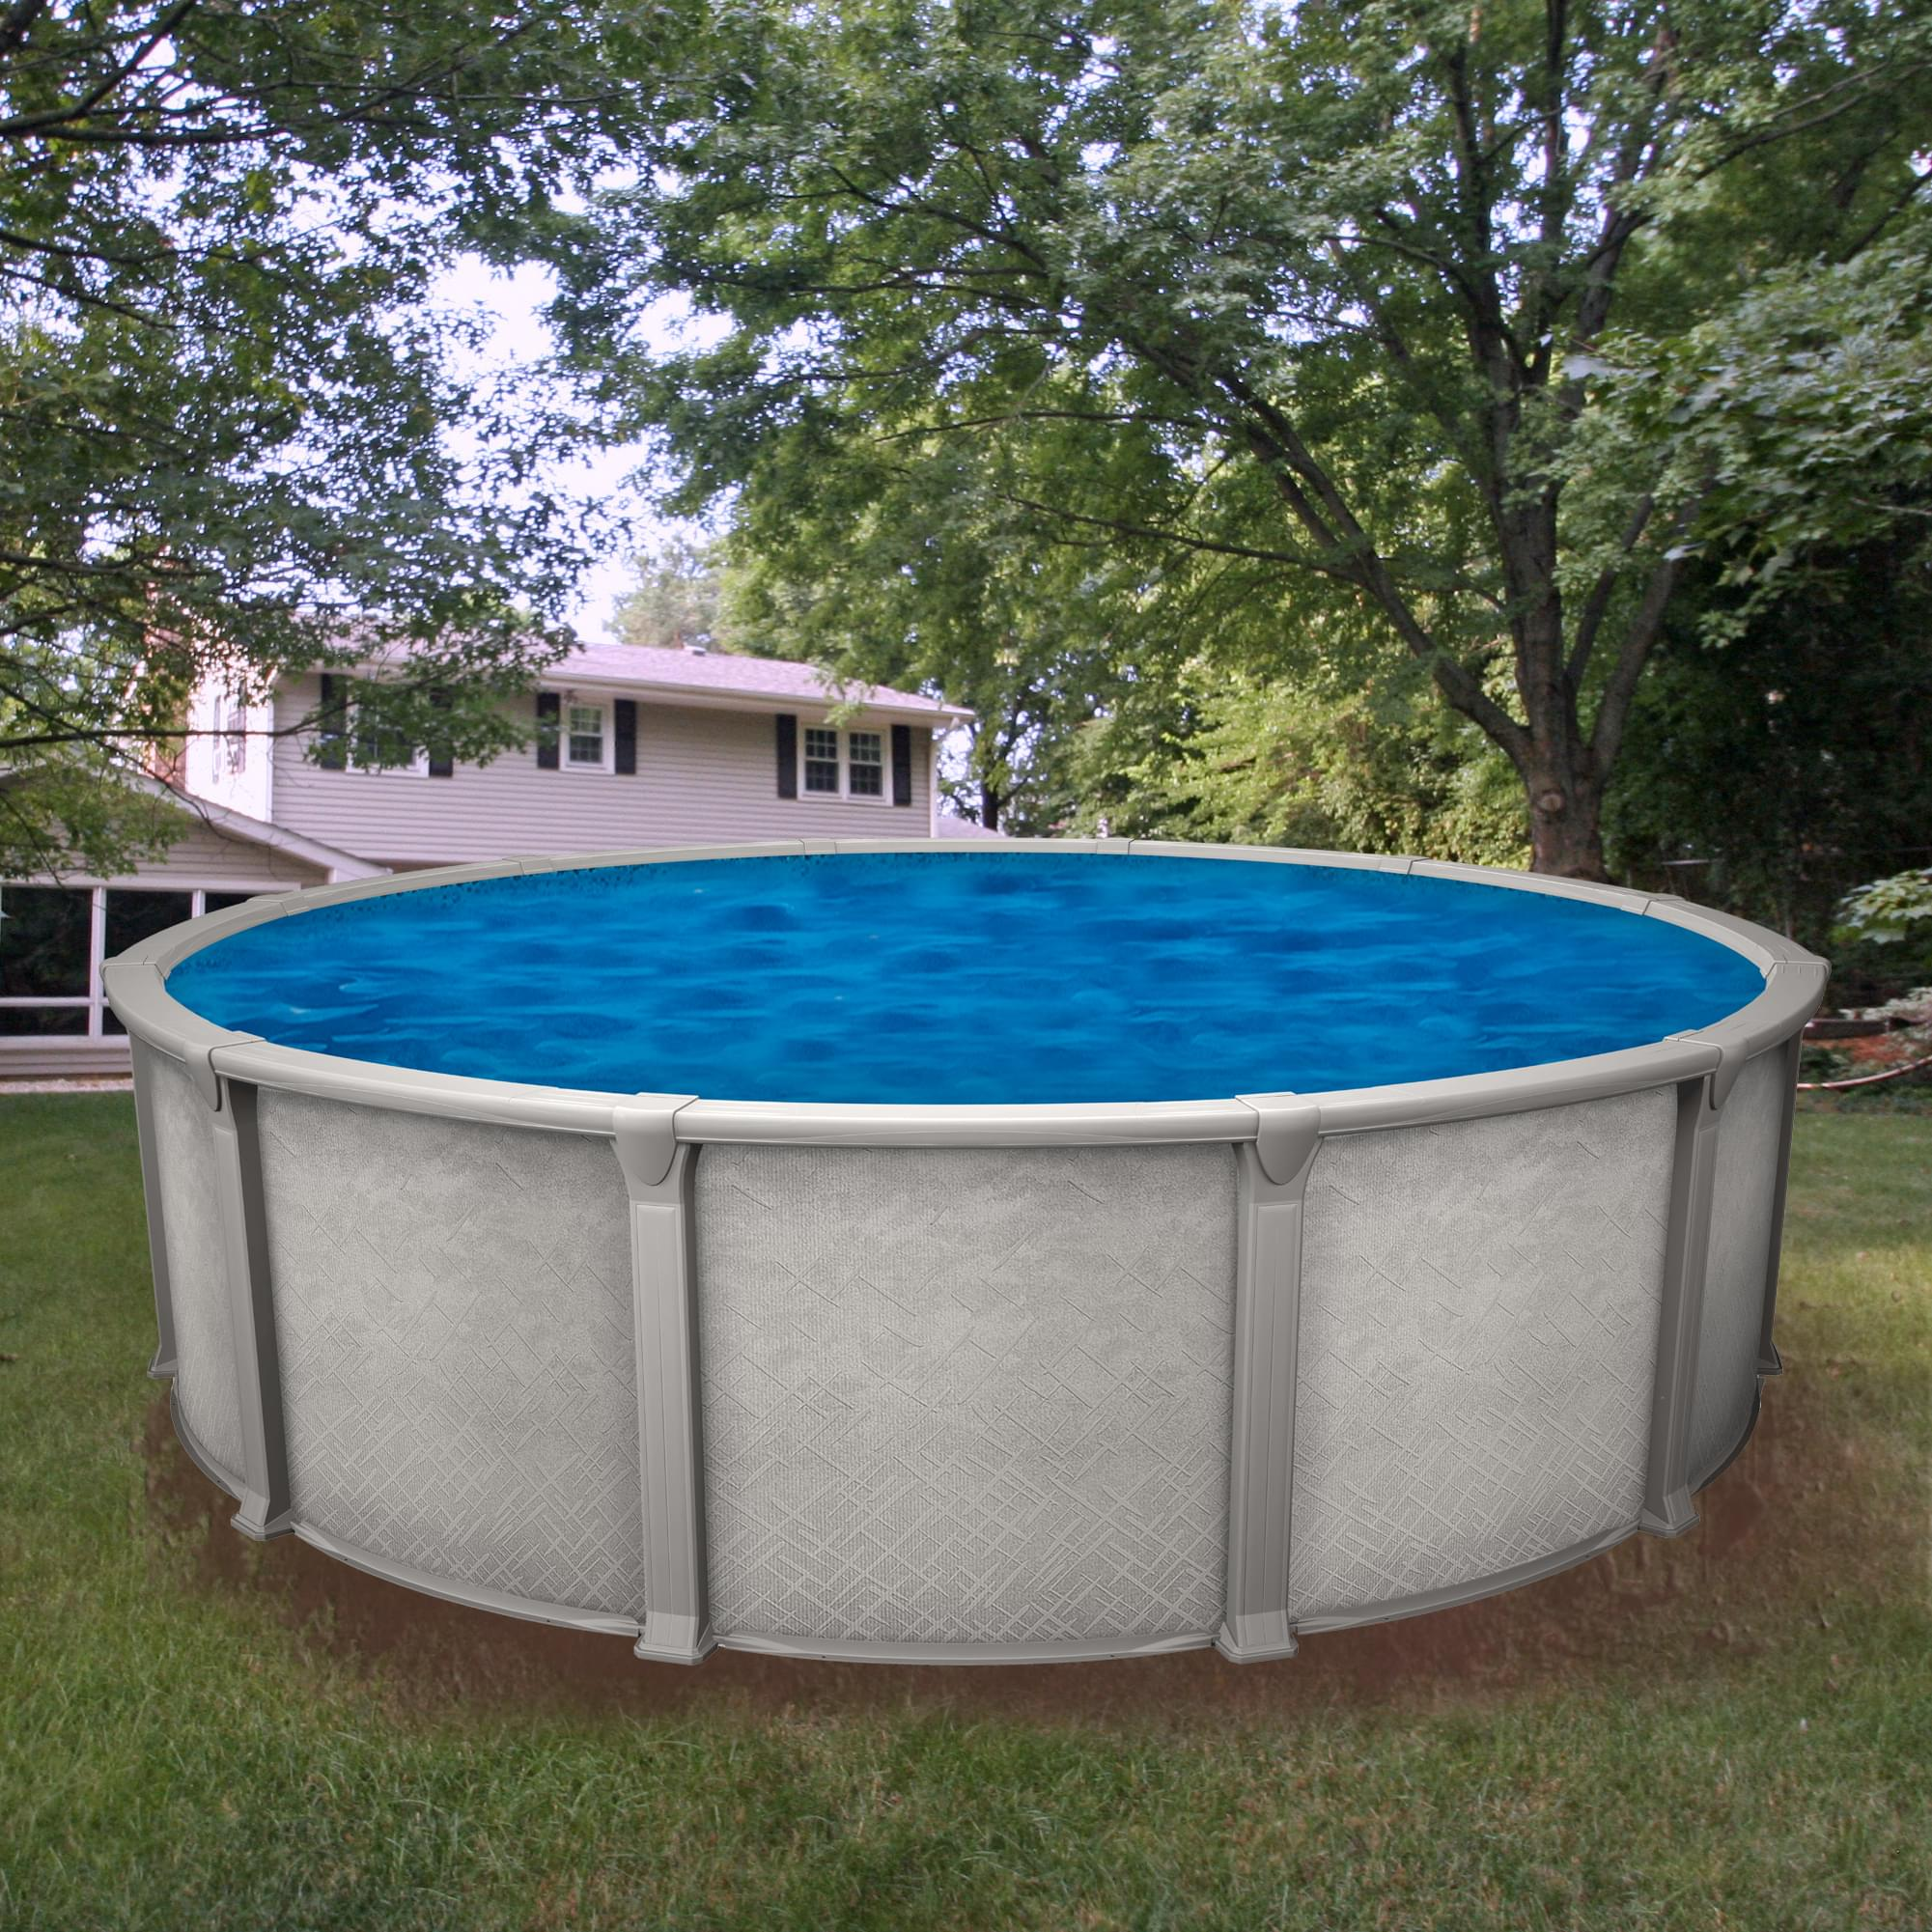 Galaxy 24 Ft Round Above Ground Pool Pool Supplies Canada